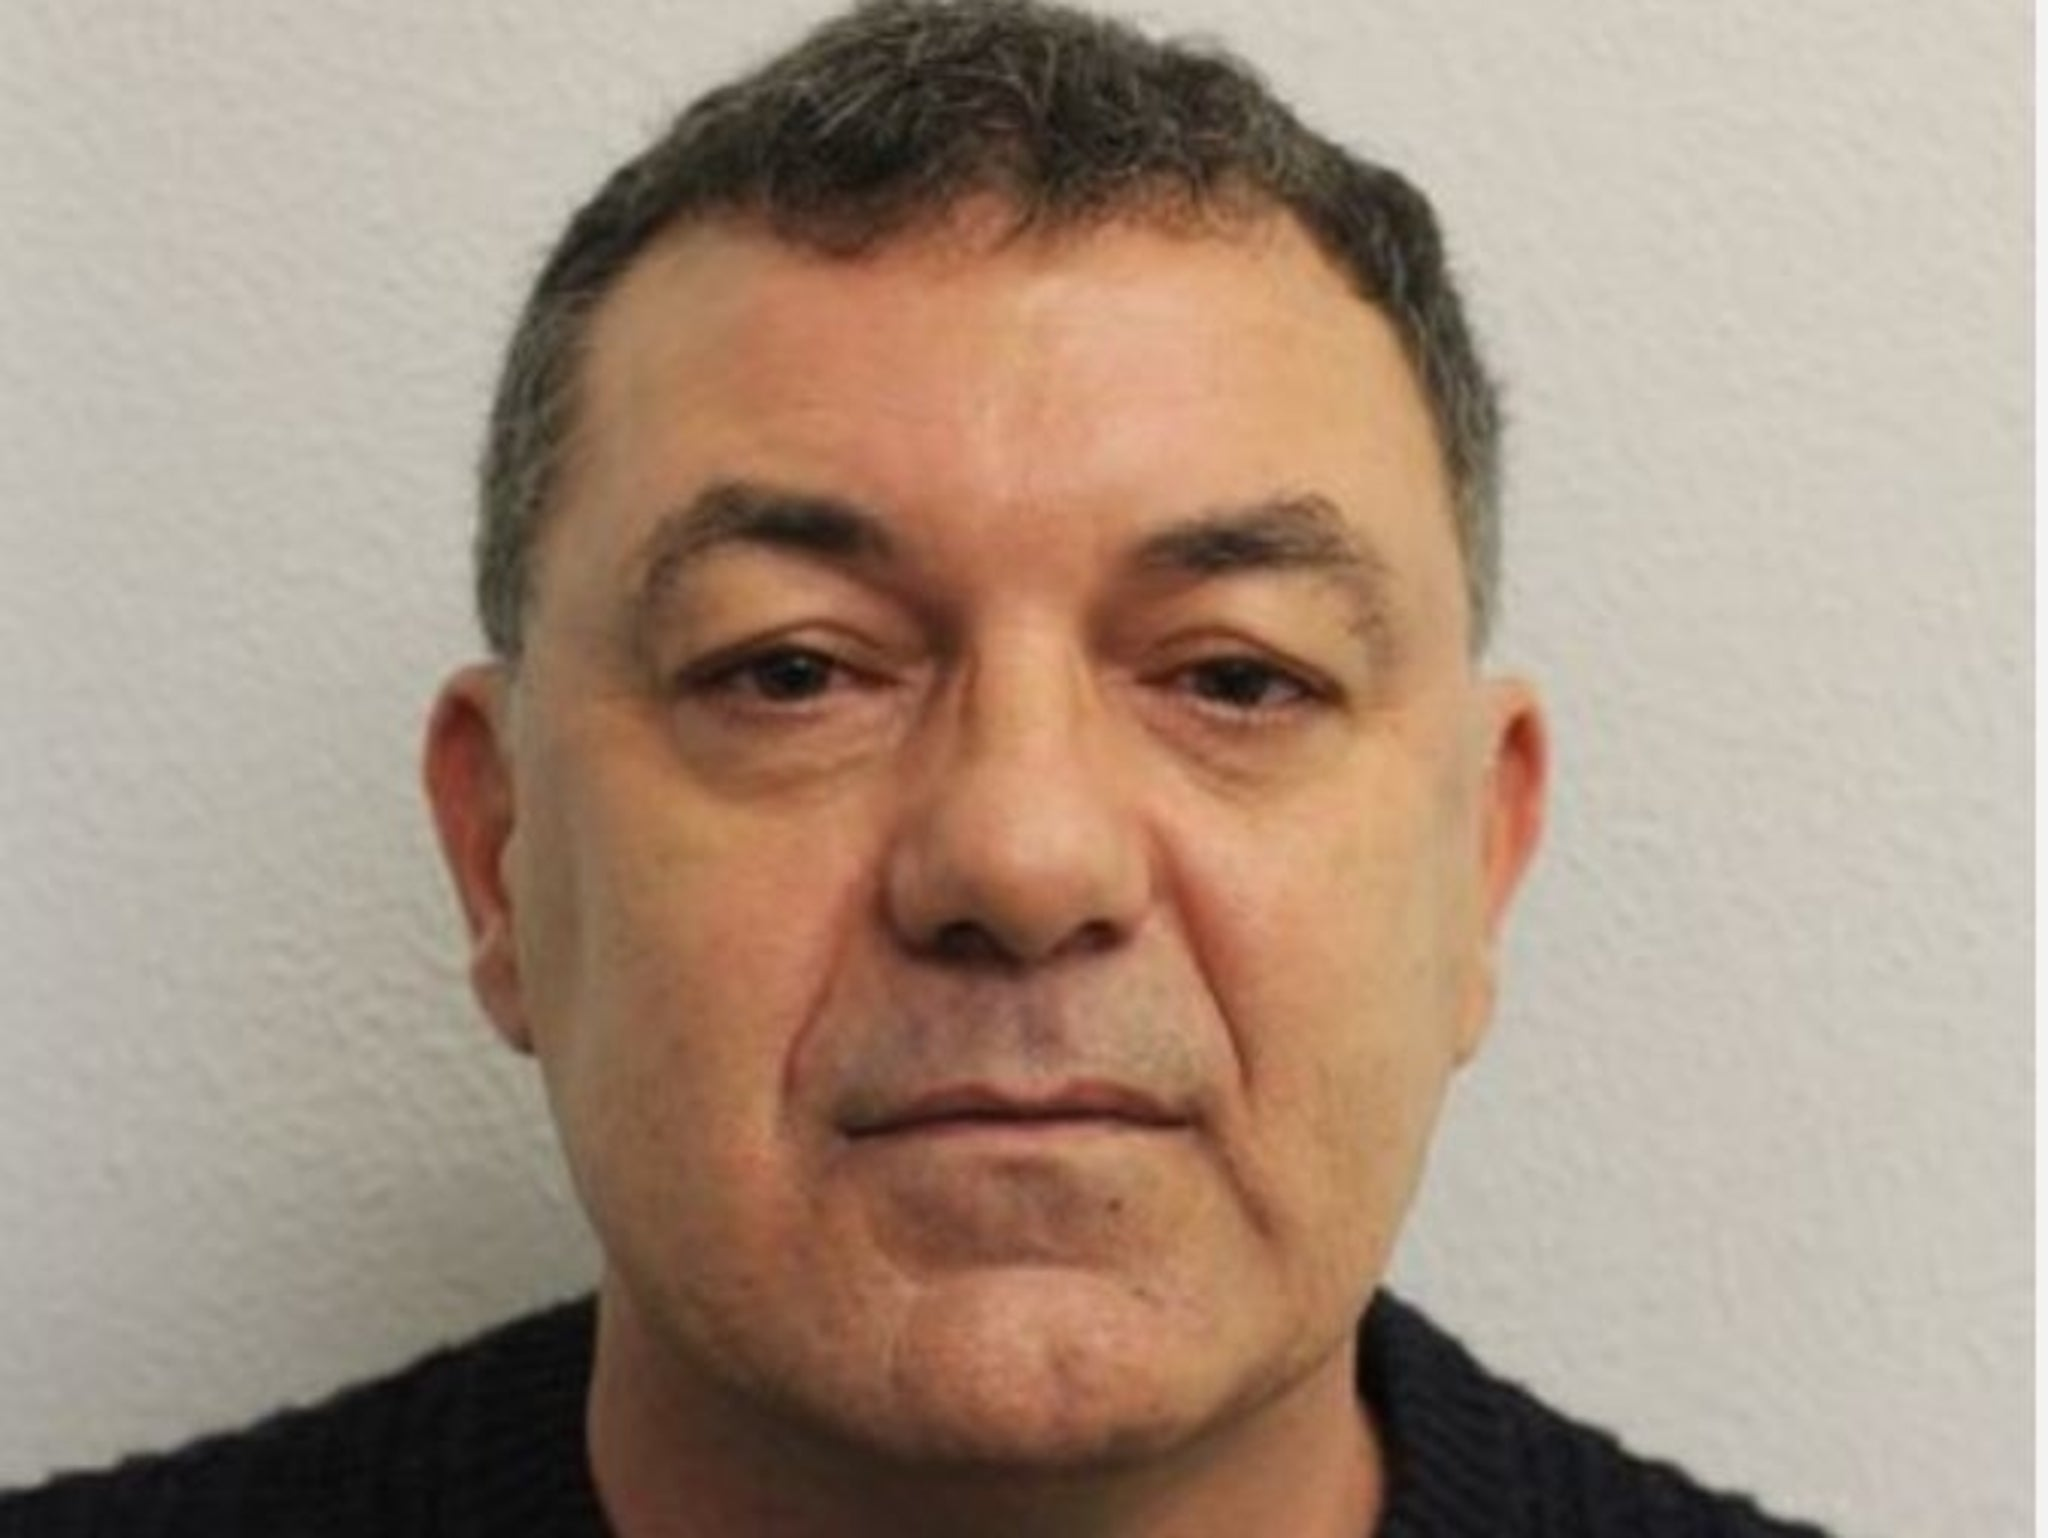 Man gave underage girls cannabis in London park then groomed them for sex